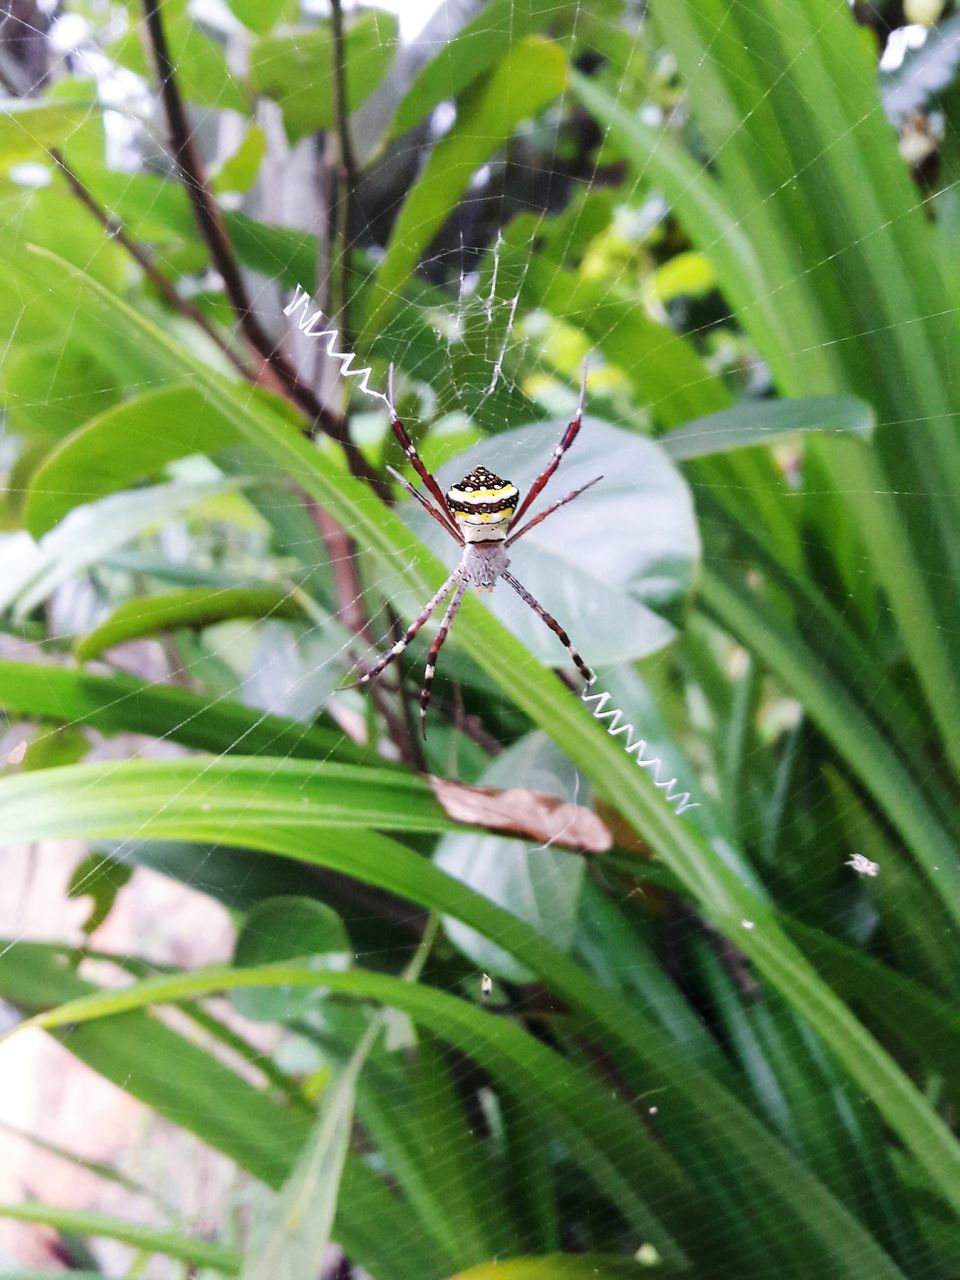 Close-Up Of Spider On Web Against Plant